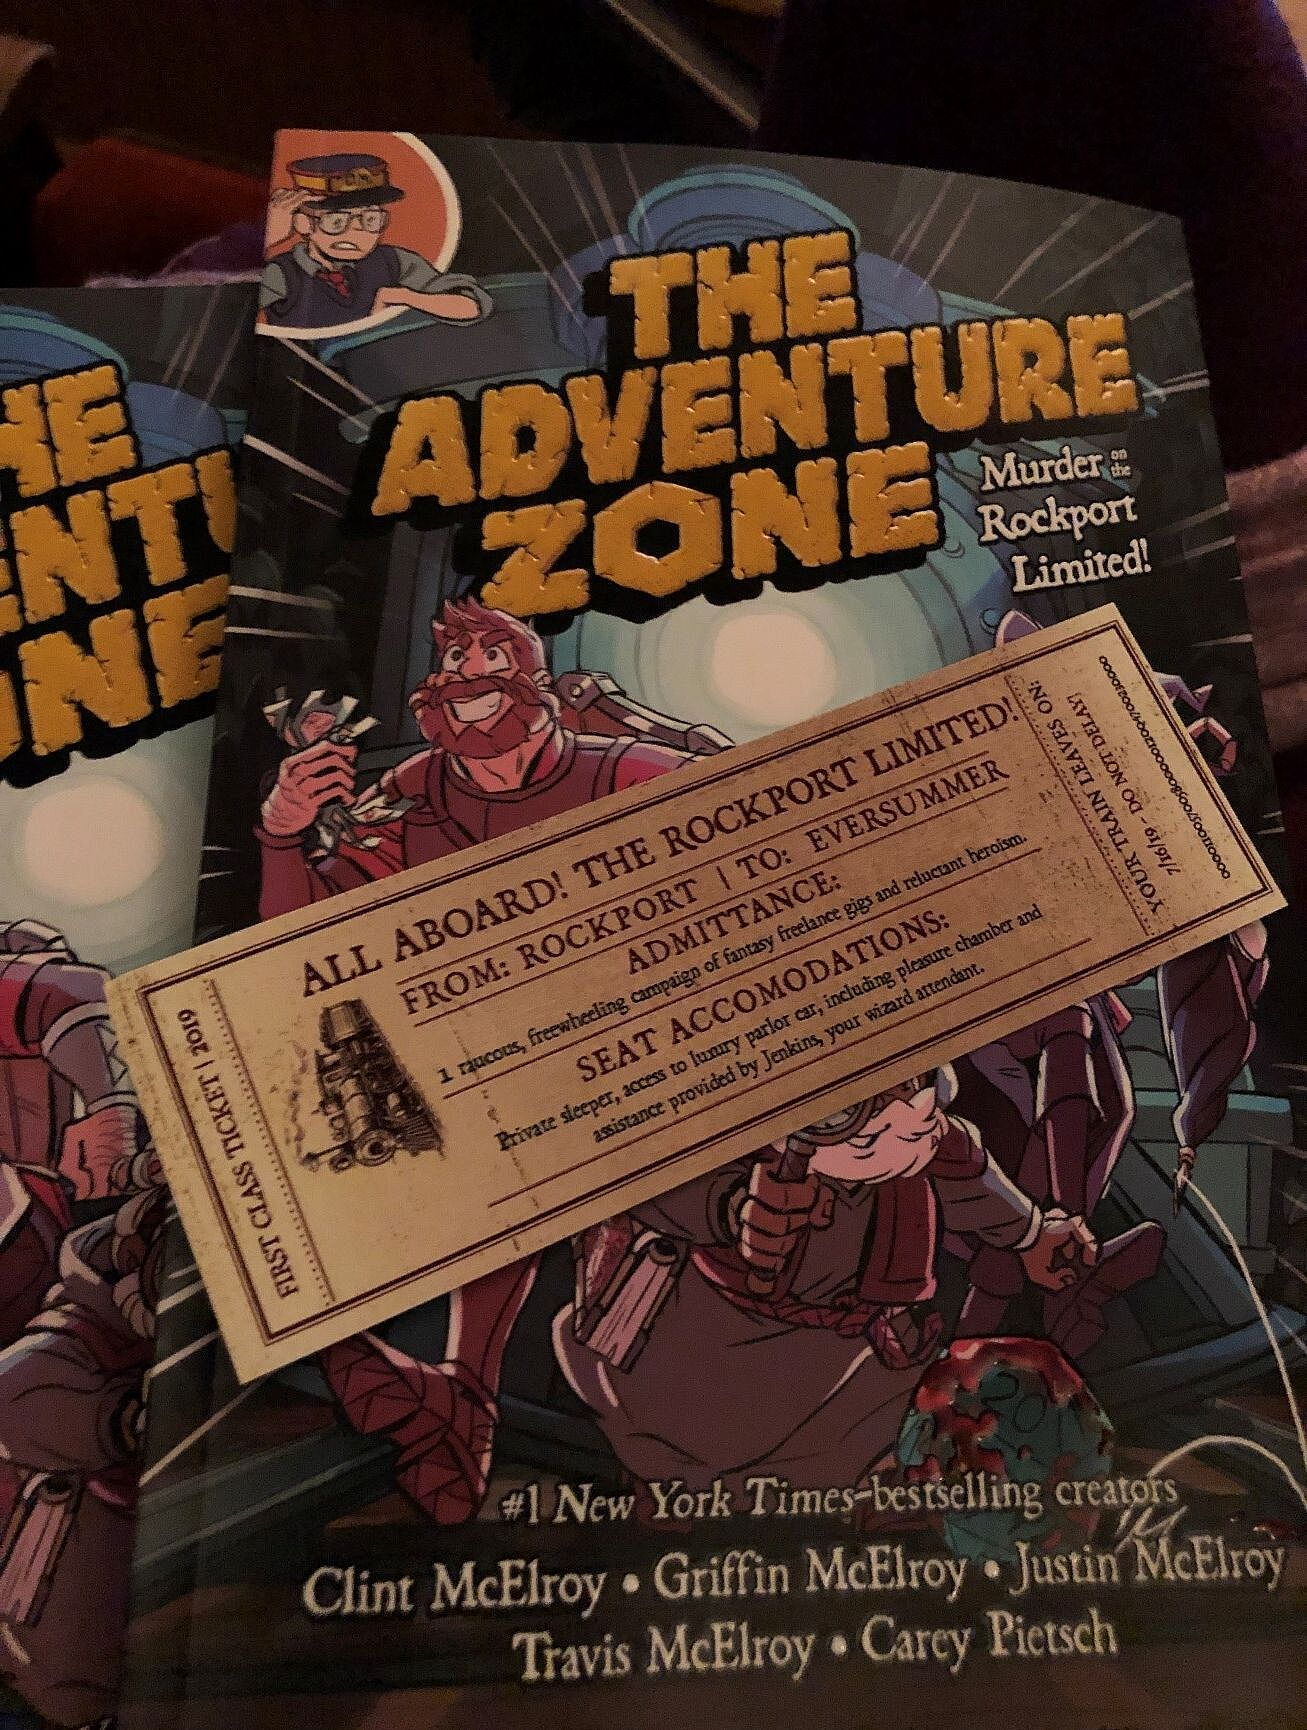 The Adventure Zone: Murder on the Rockport Limited!' tour is